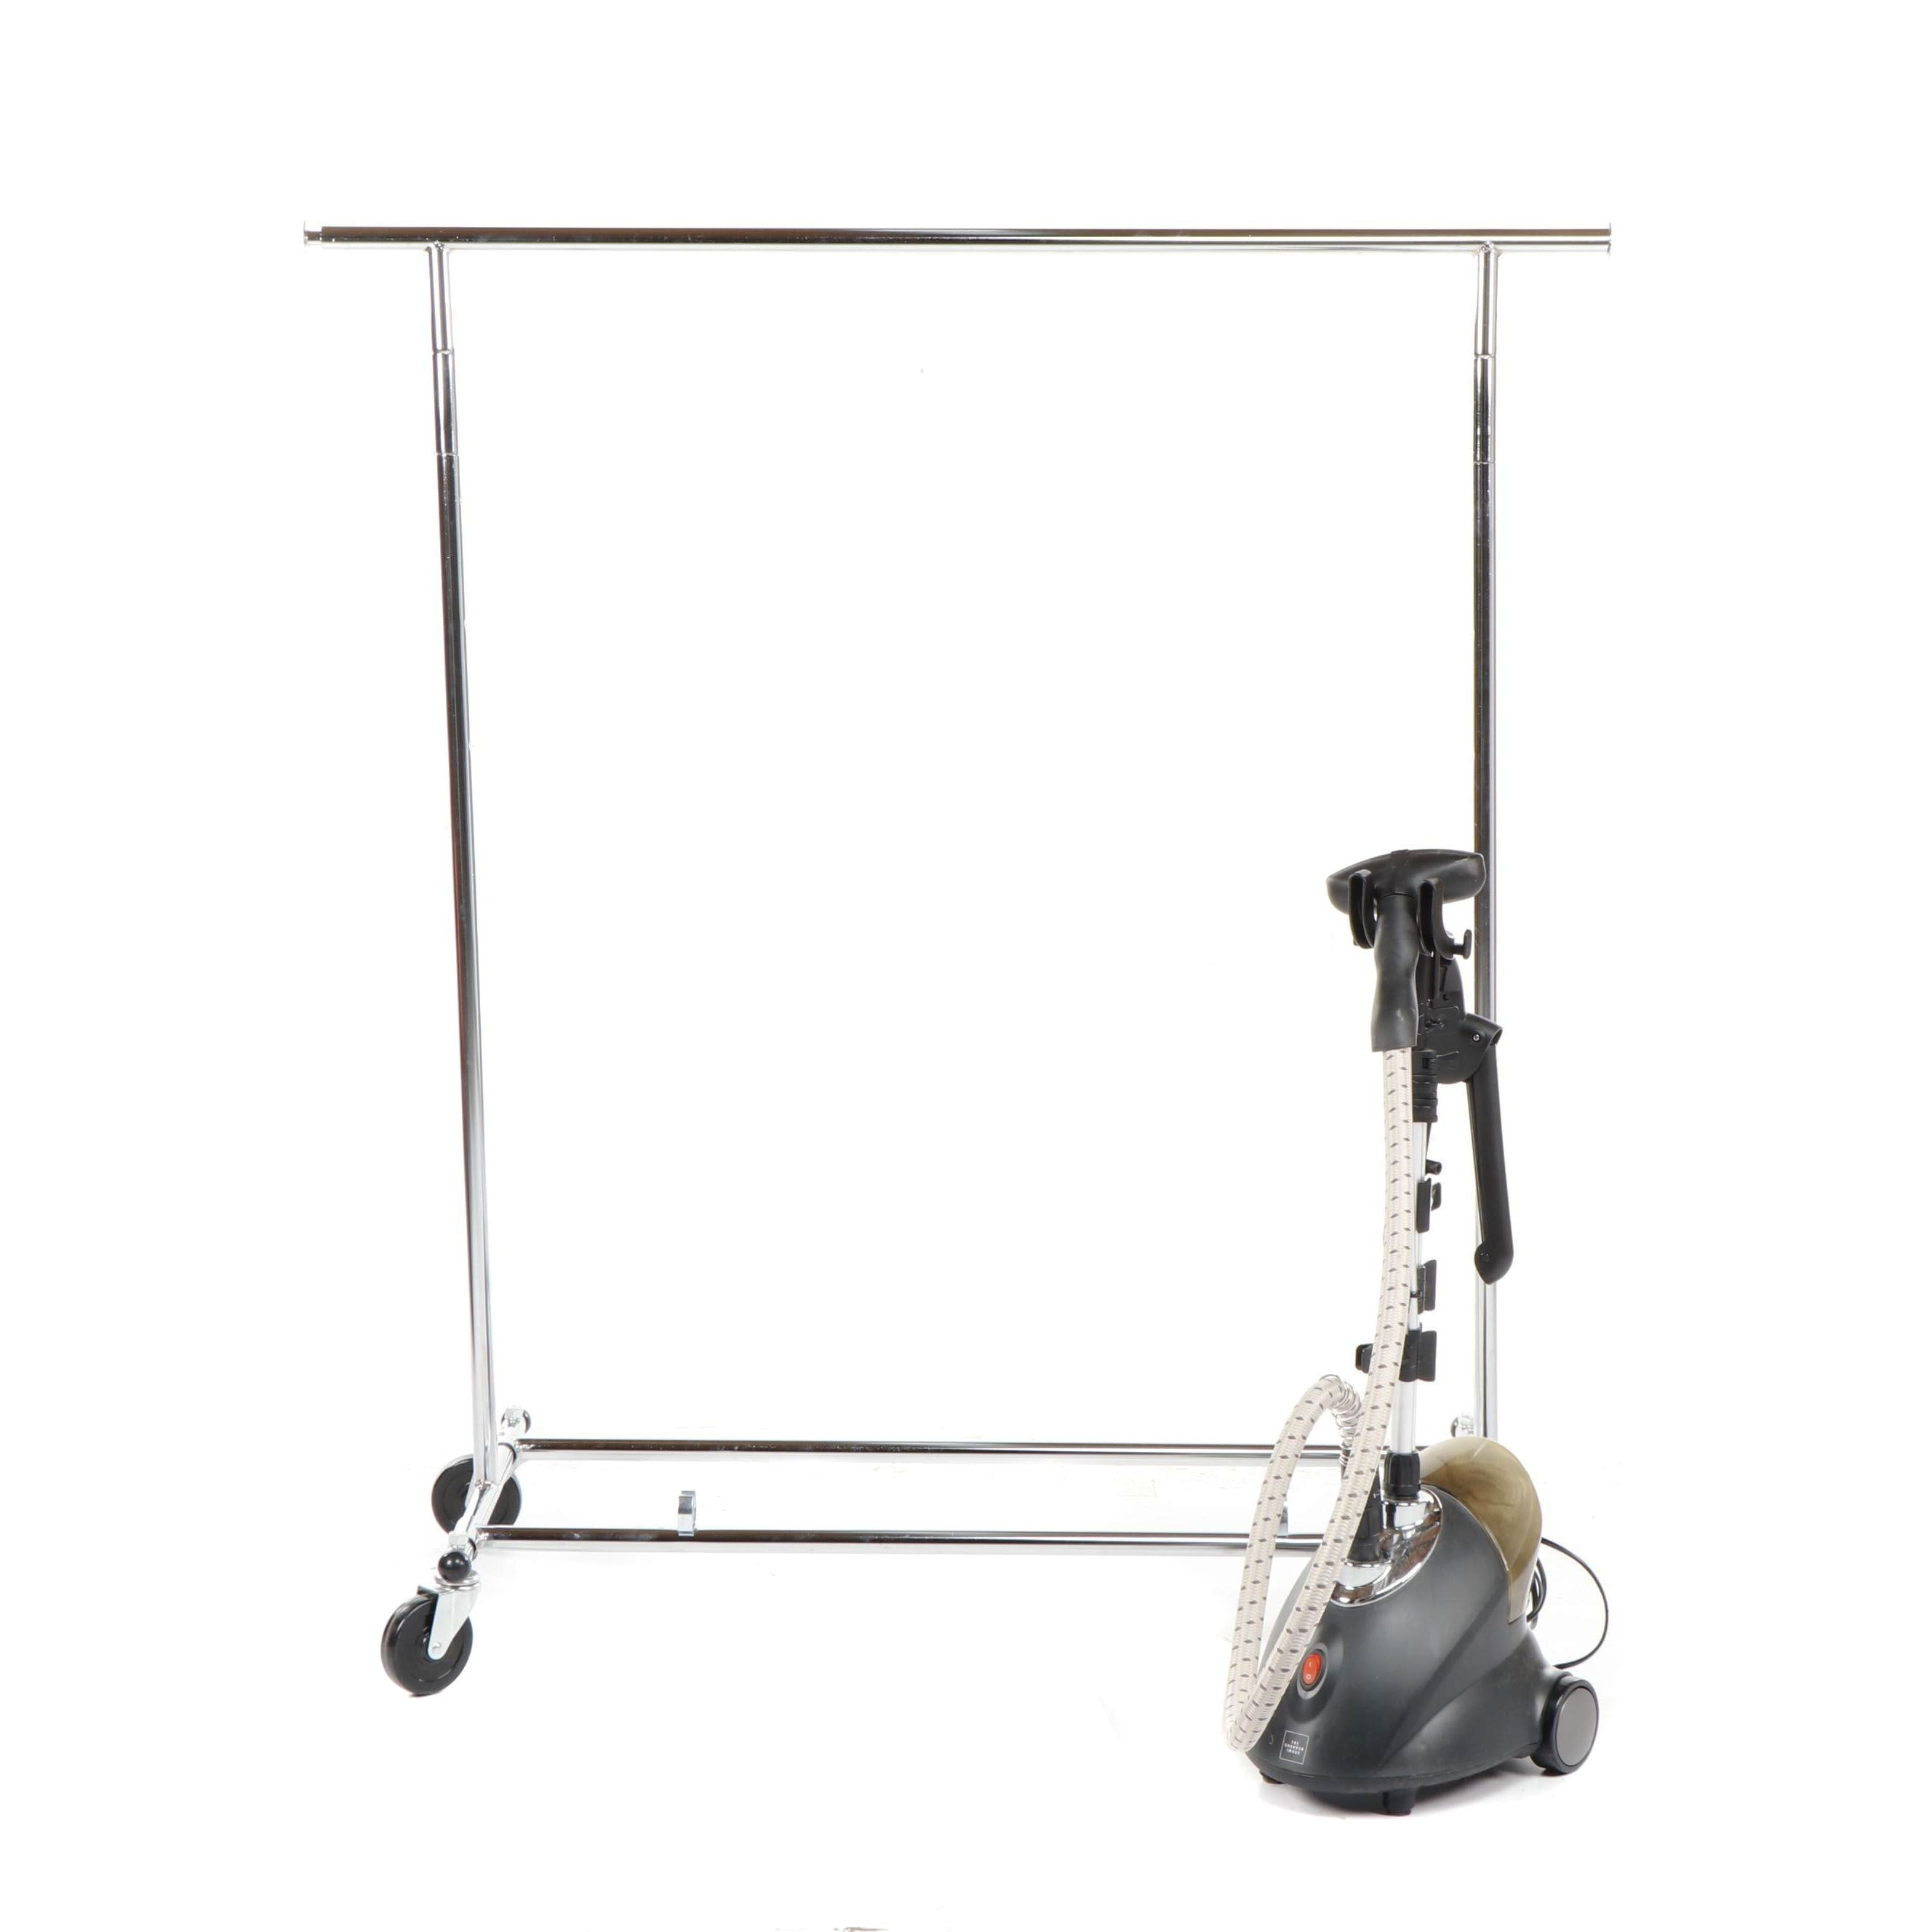 The Sharper Image Garment Steamer and Rolling Clothing Rack